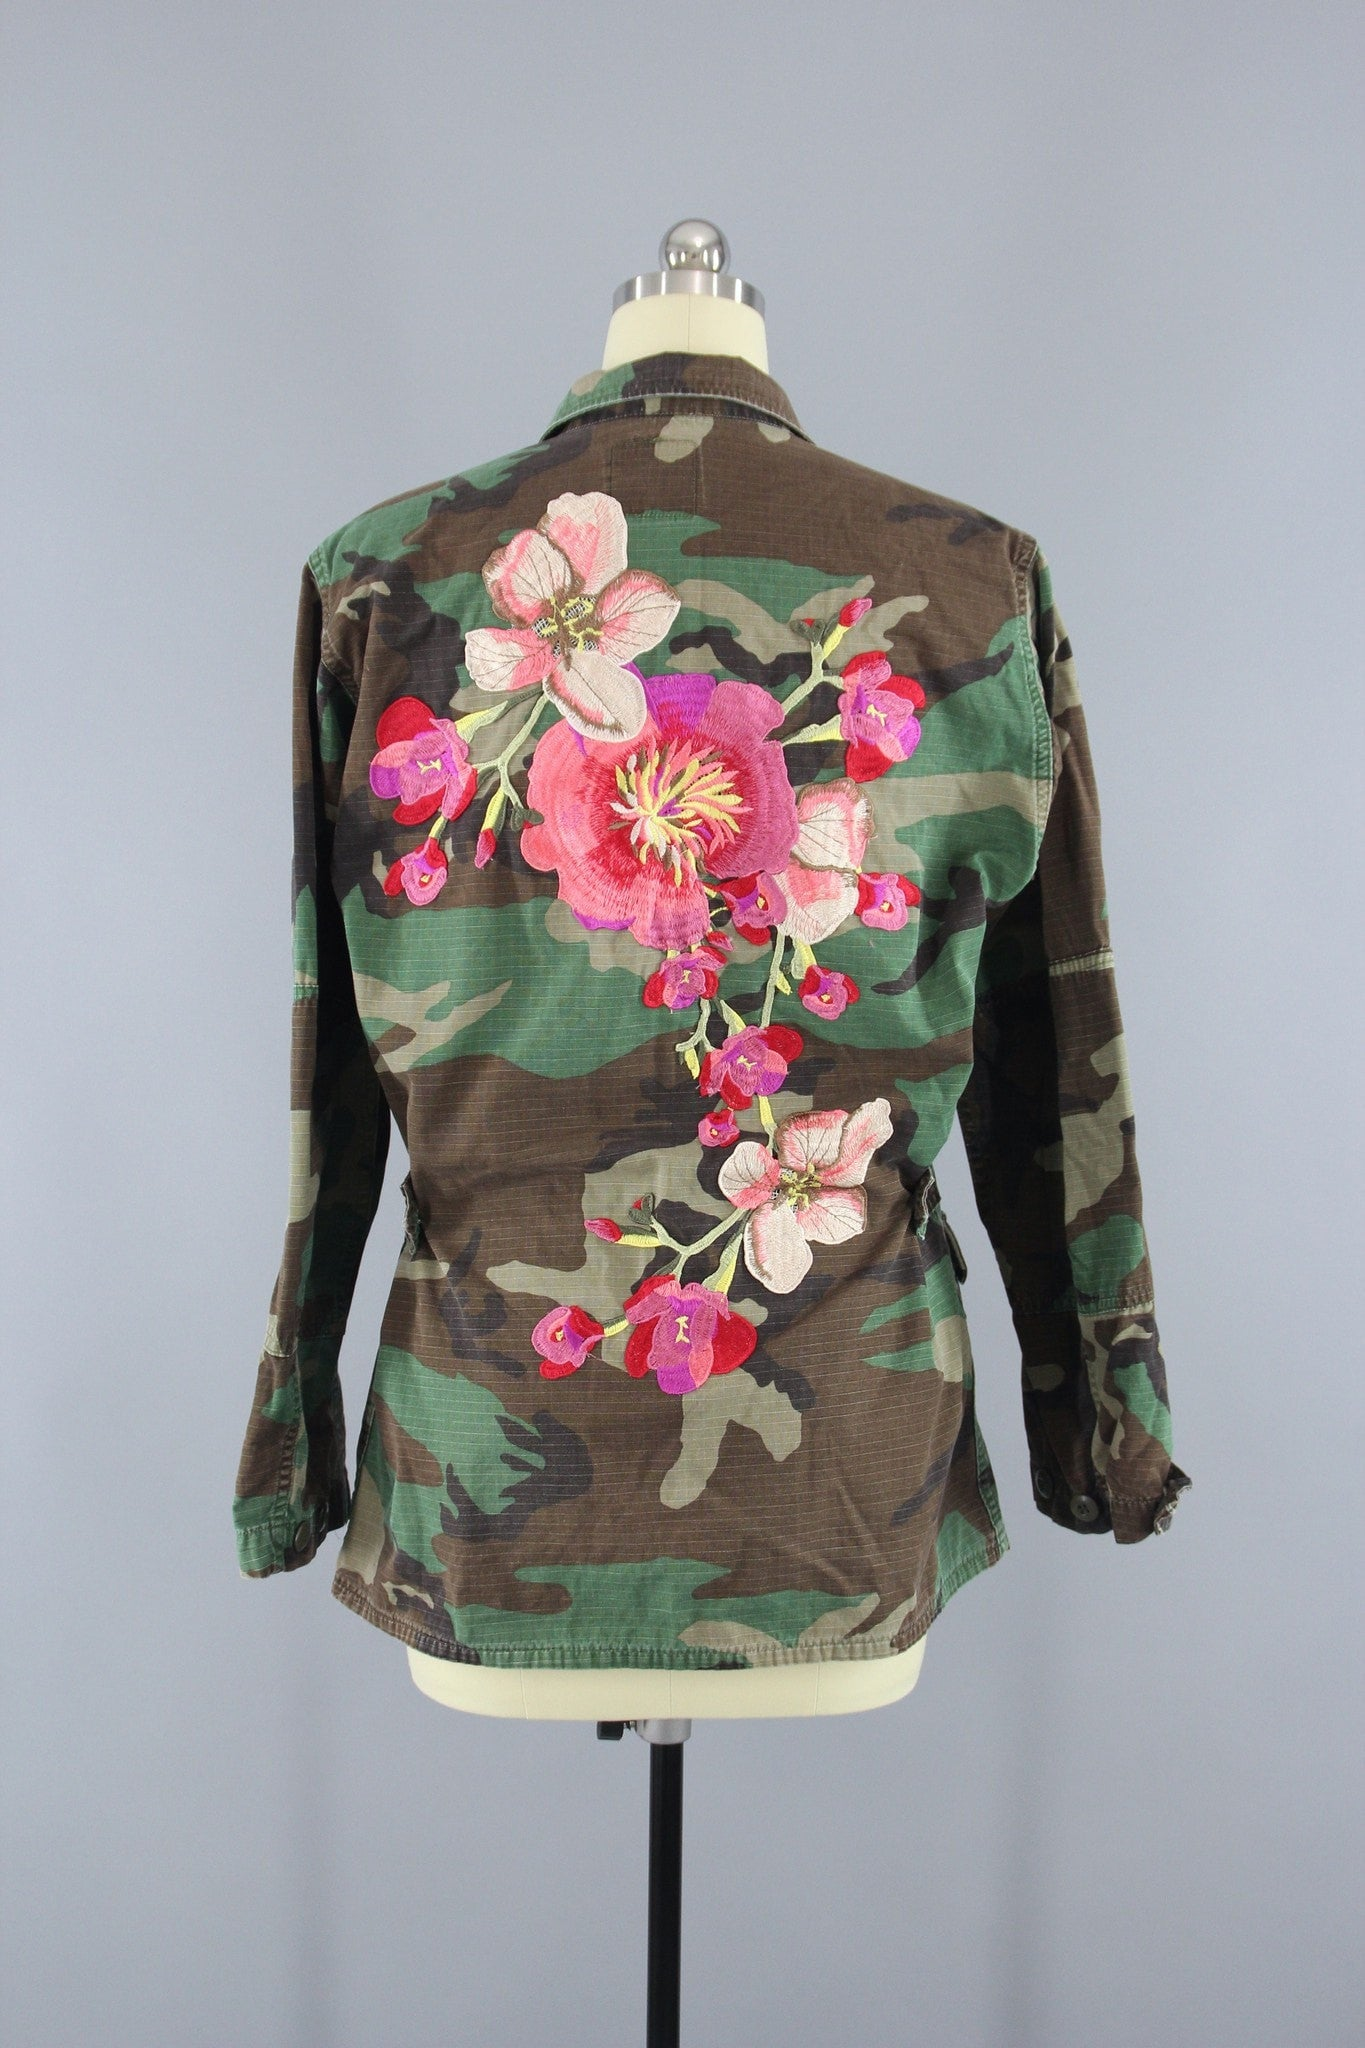 Vintage Army Camouflage Military Jacket with Large Peach Pink Floral Embroidery Outerwear ThisBlueBird